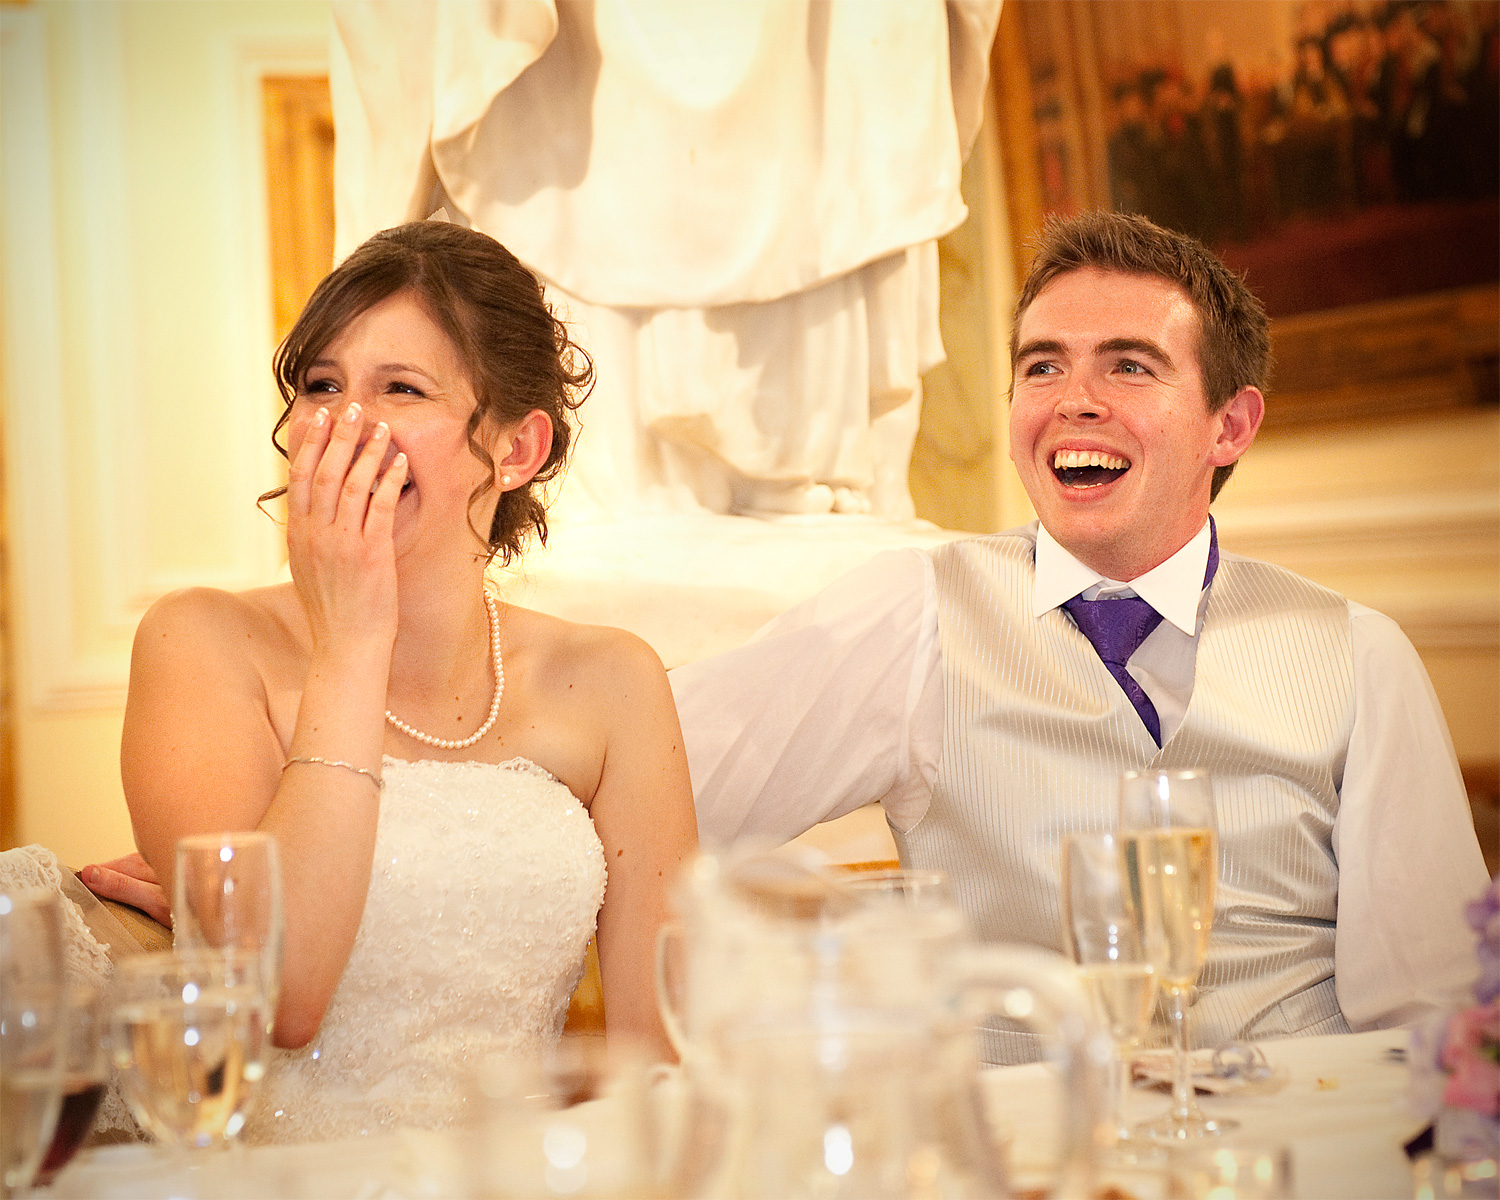 Cardiff-wedding-reception-Laughing-Bride-Groom-City-Hall-Cardiff-wedding-photographer